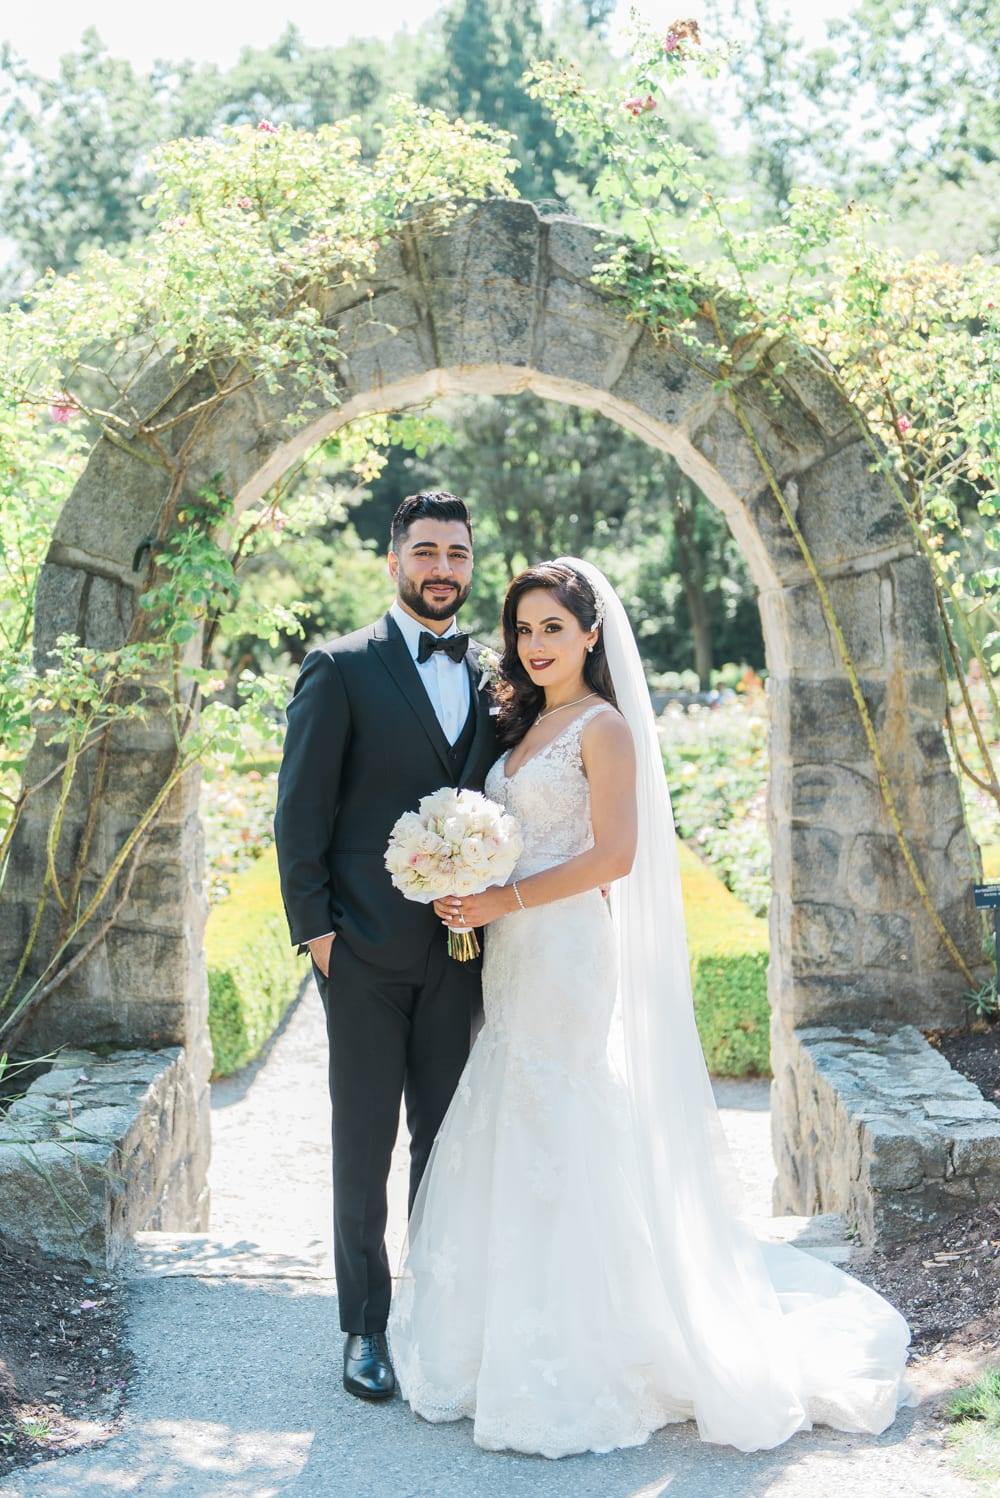 A Vintage Persian Wedding in Vancouver - Newlyweds